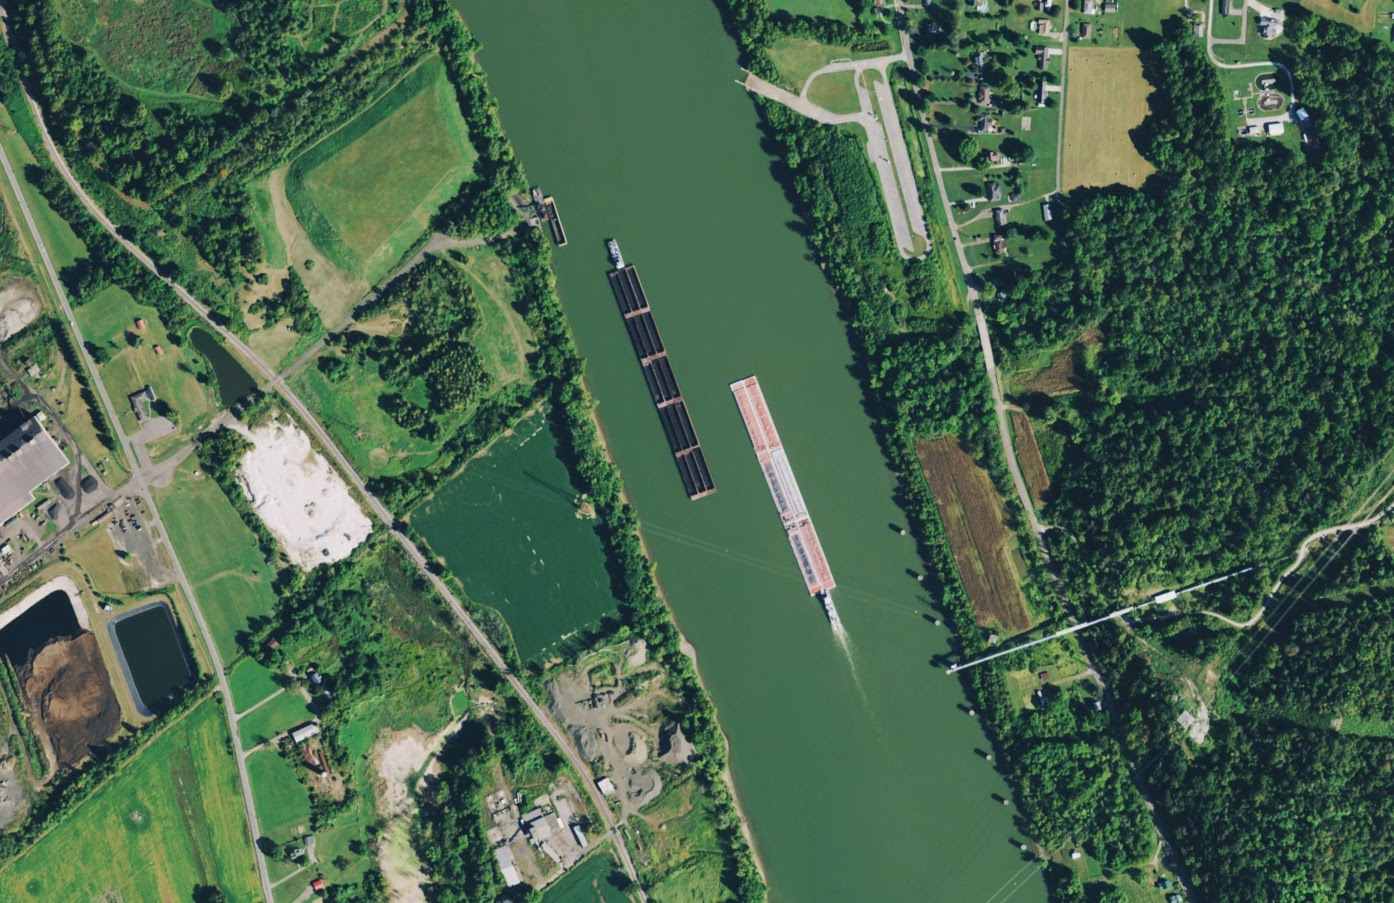 Updated Aerial Imagery in the US